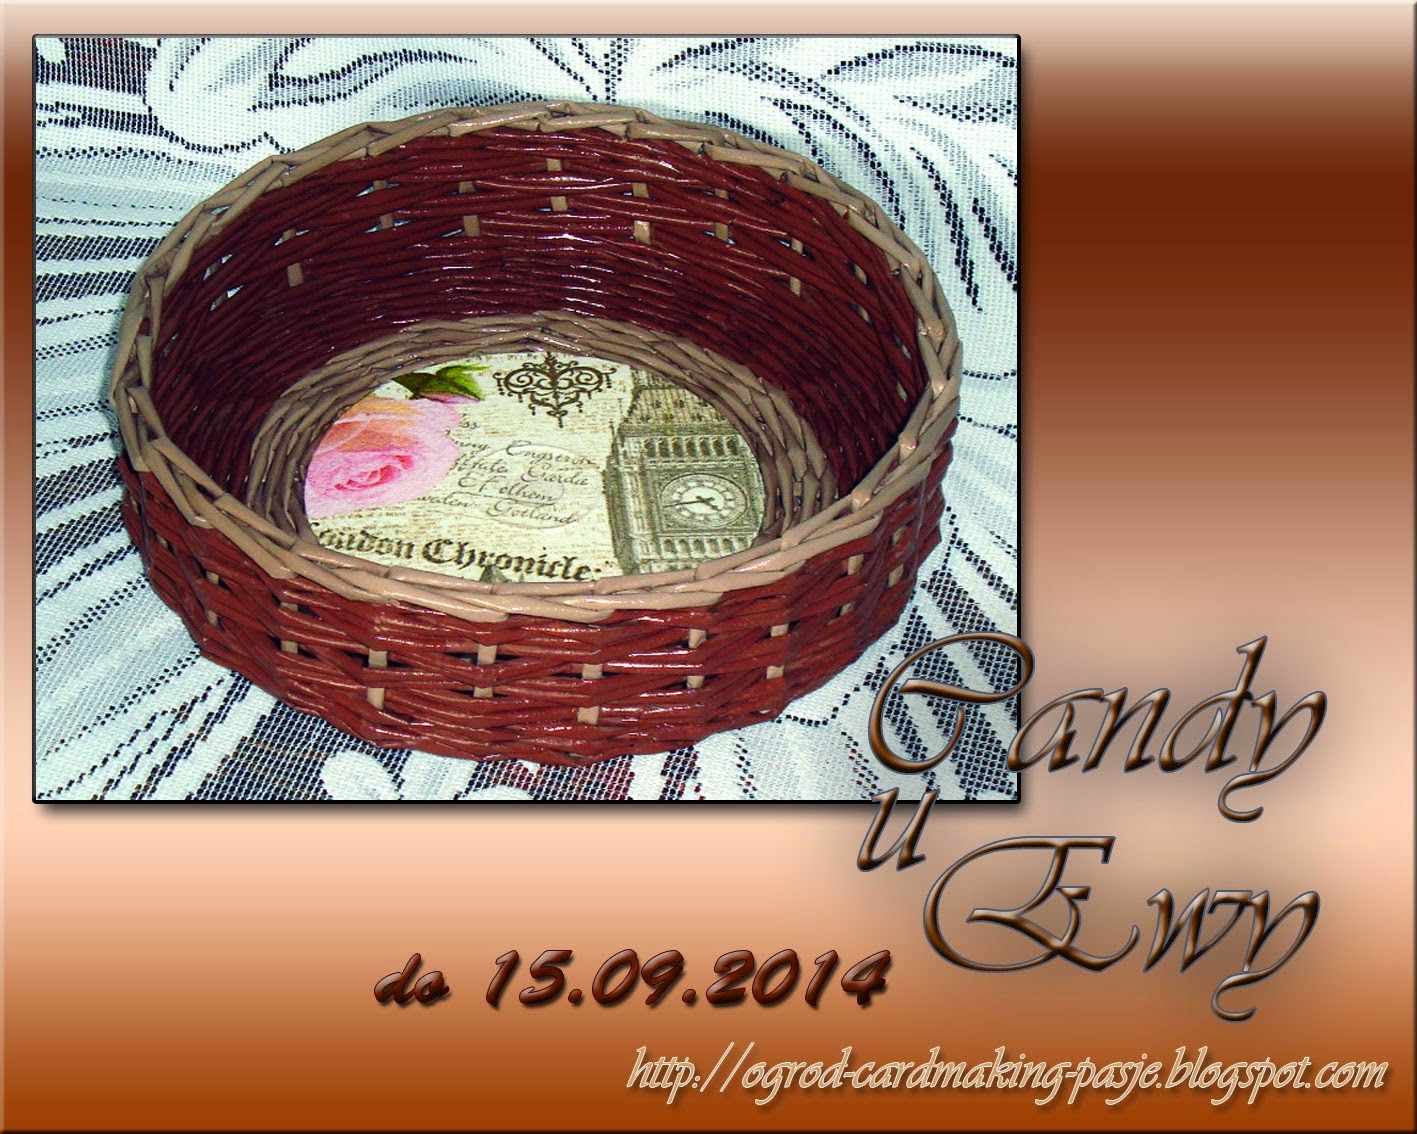 candy do 15 wrzesien